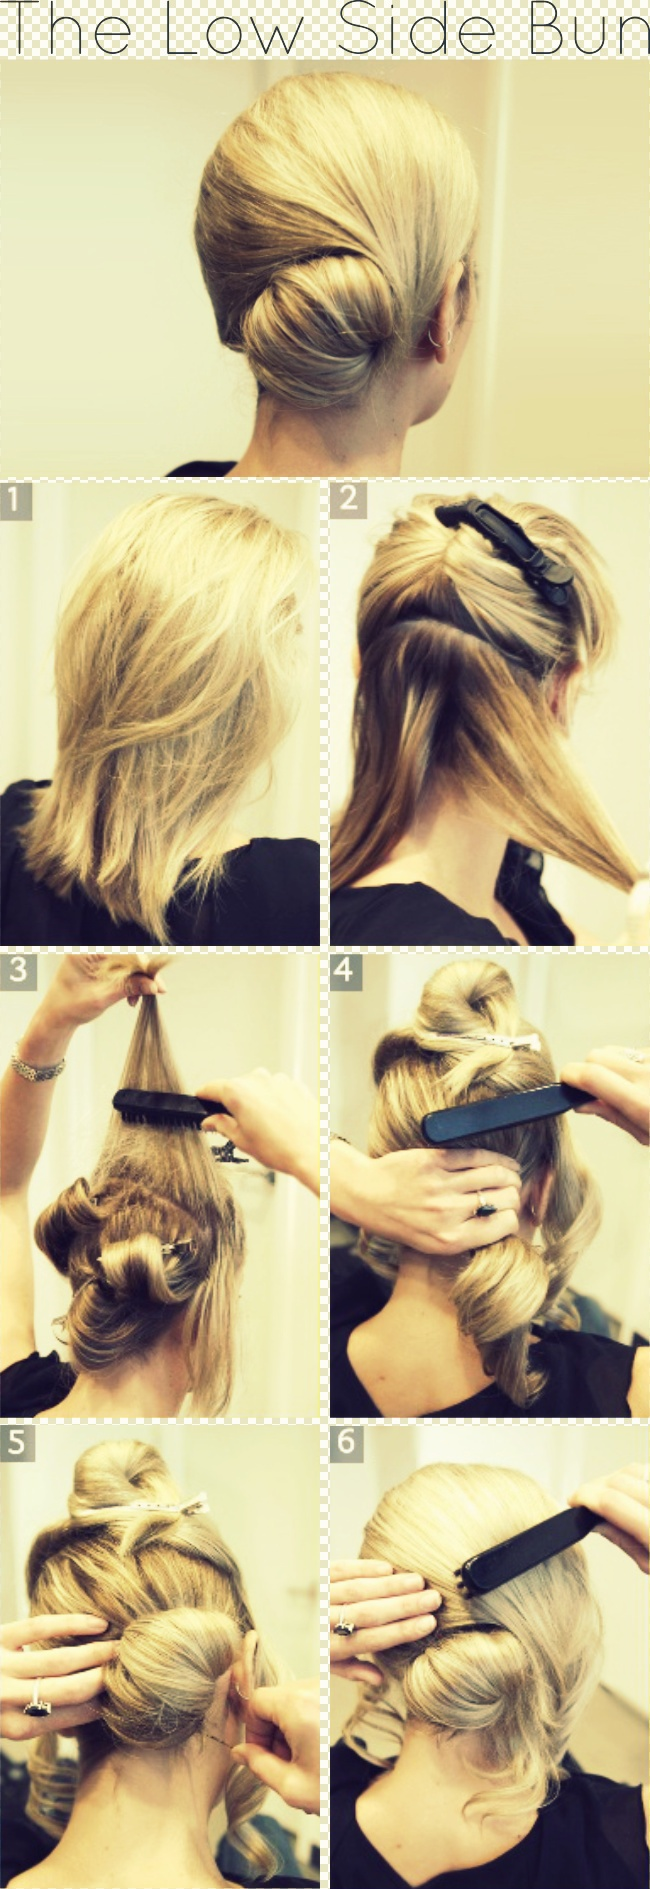 Terrific Graceful And Beautiful Low Side Bun Hairstyle Tutorials And Hair Hairstyles For Women Draintrainus